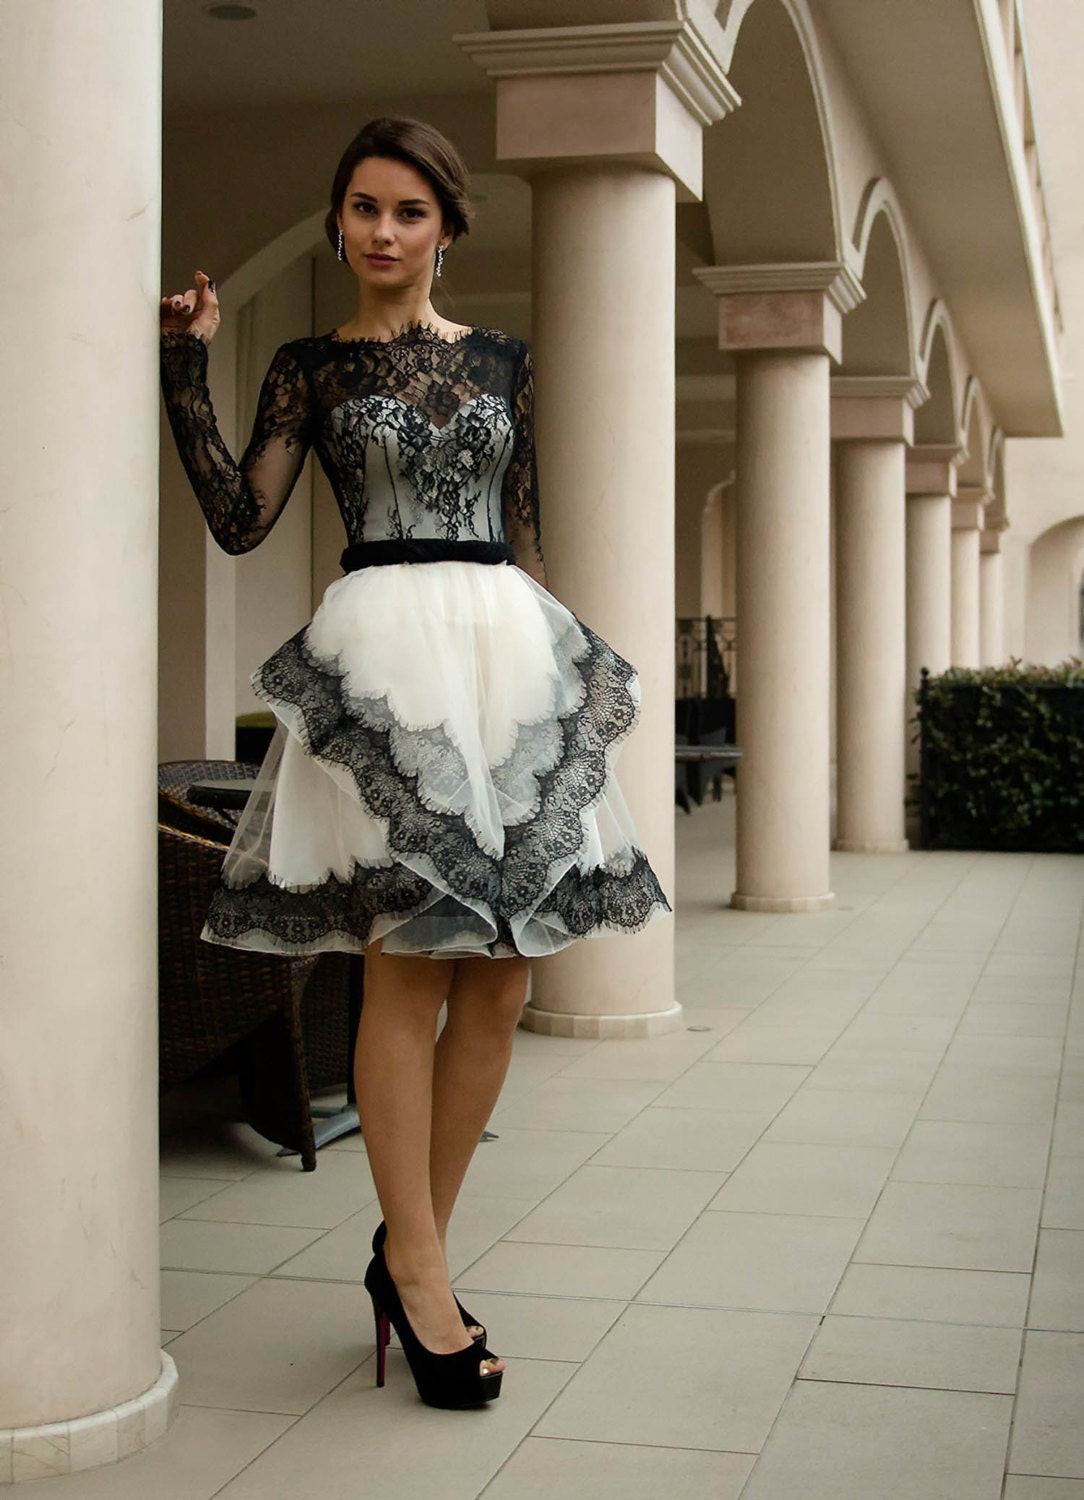 Black and white wedding dress Short bridal dress with lace